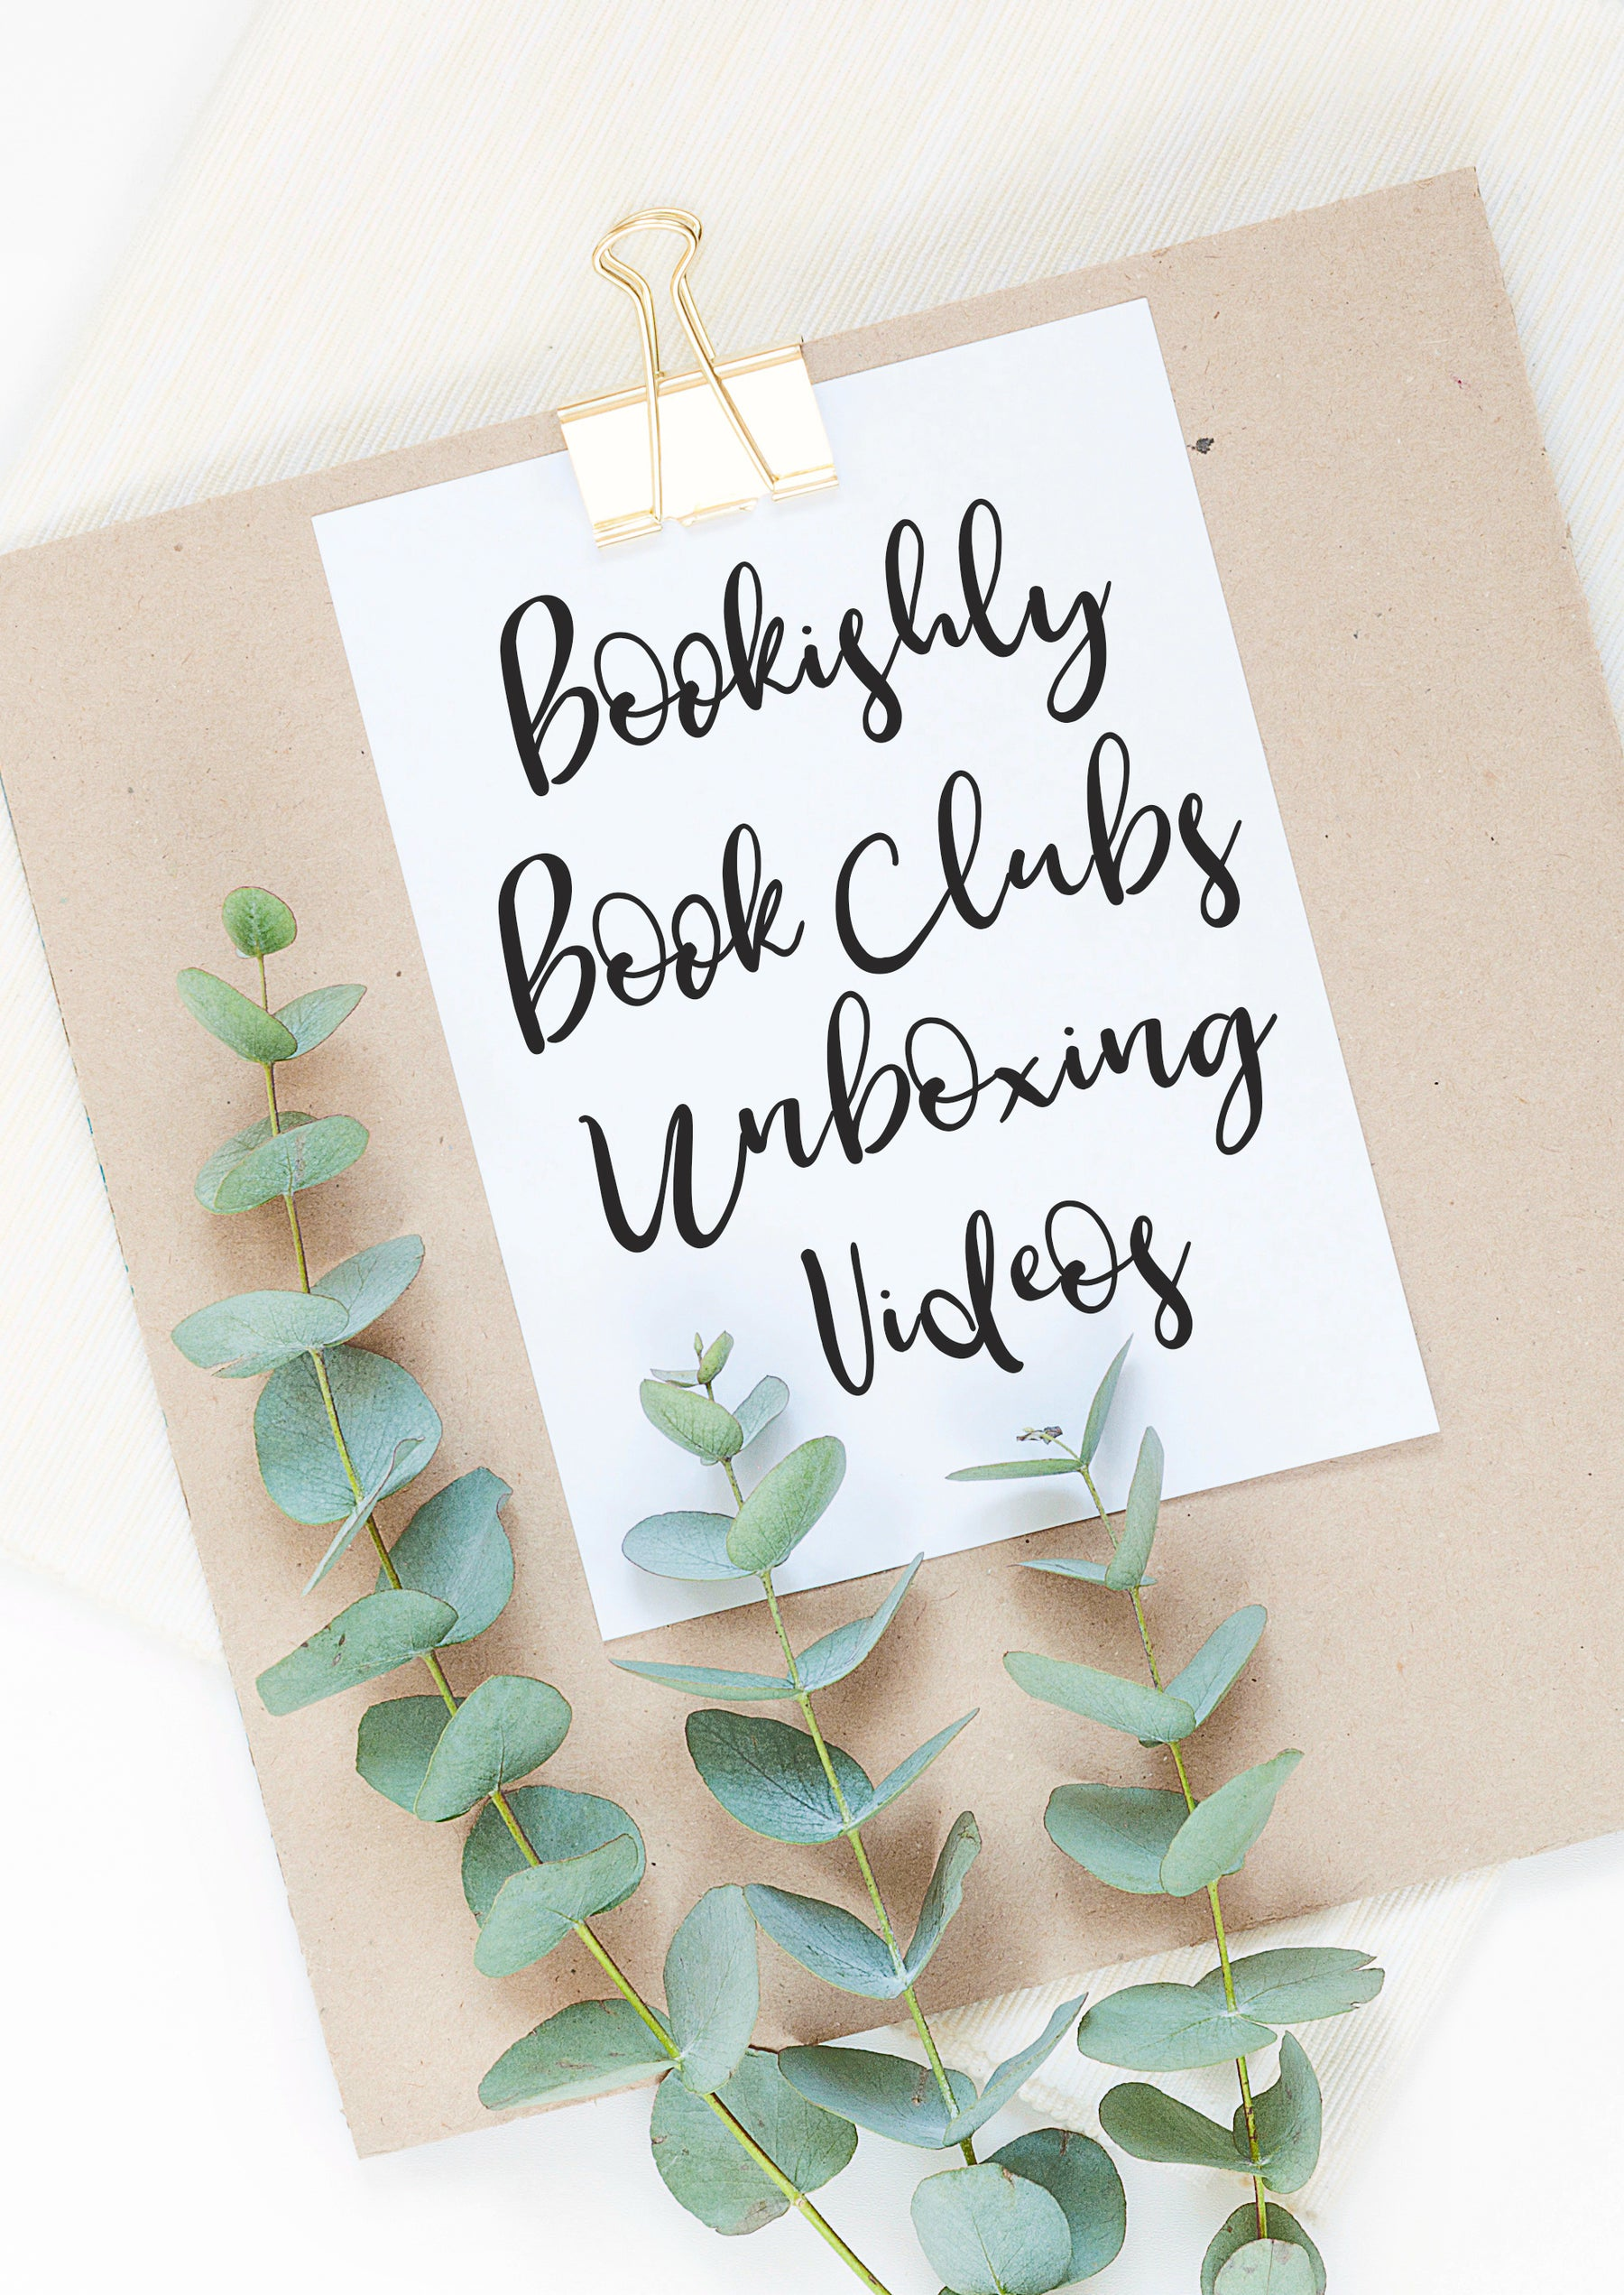 The Bookishly Book Club Subscriptions - Unboxing Videos